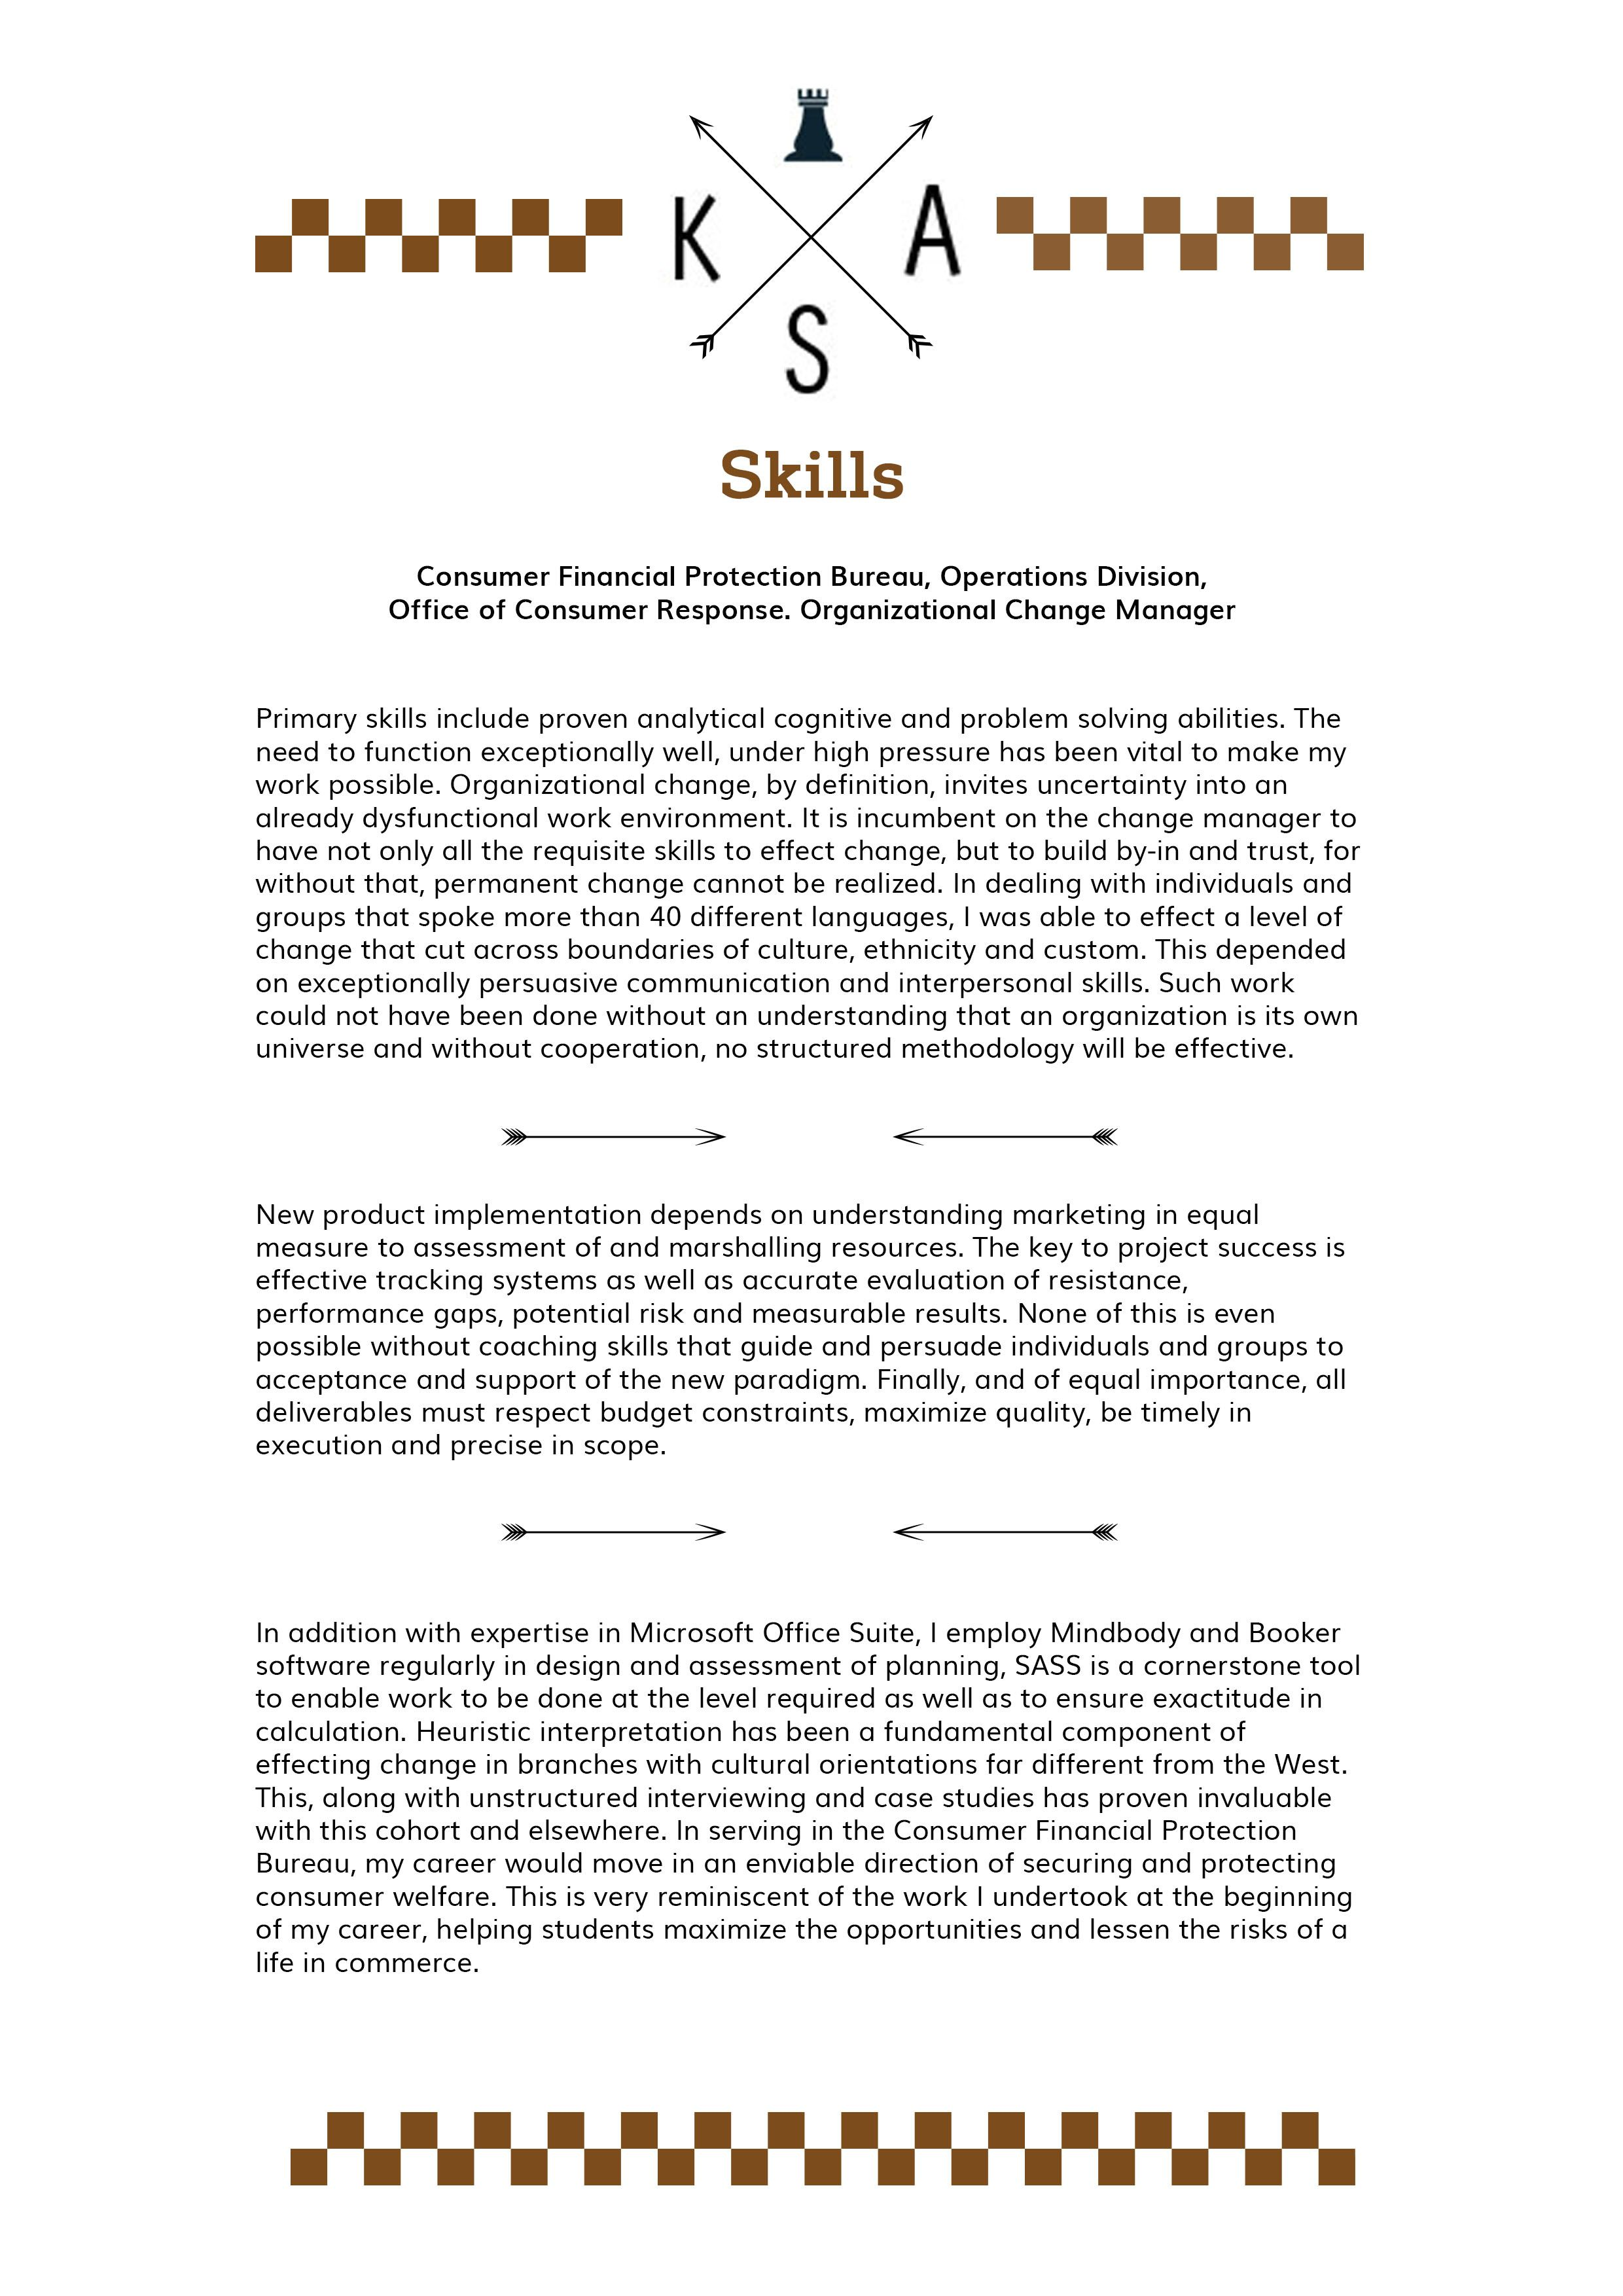 Knowledge Skills And Abilities Example Knowledge Skills Abilities Skills Knowledge Problem Solving